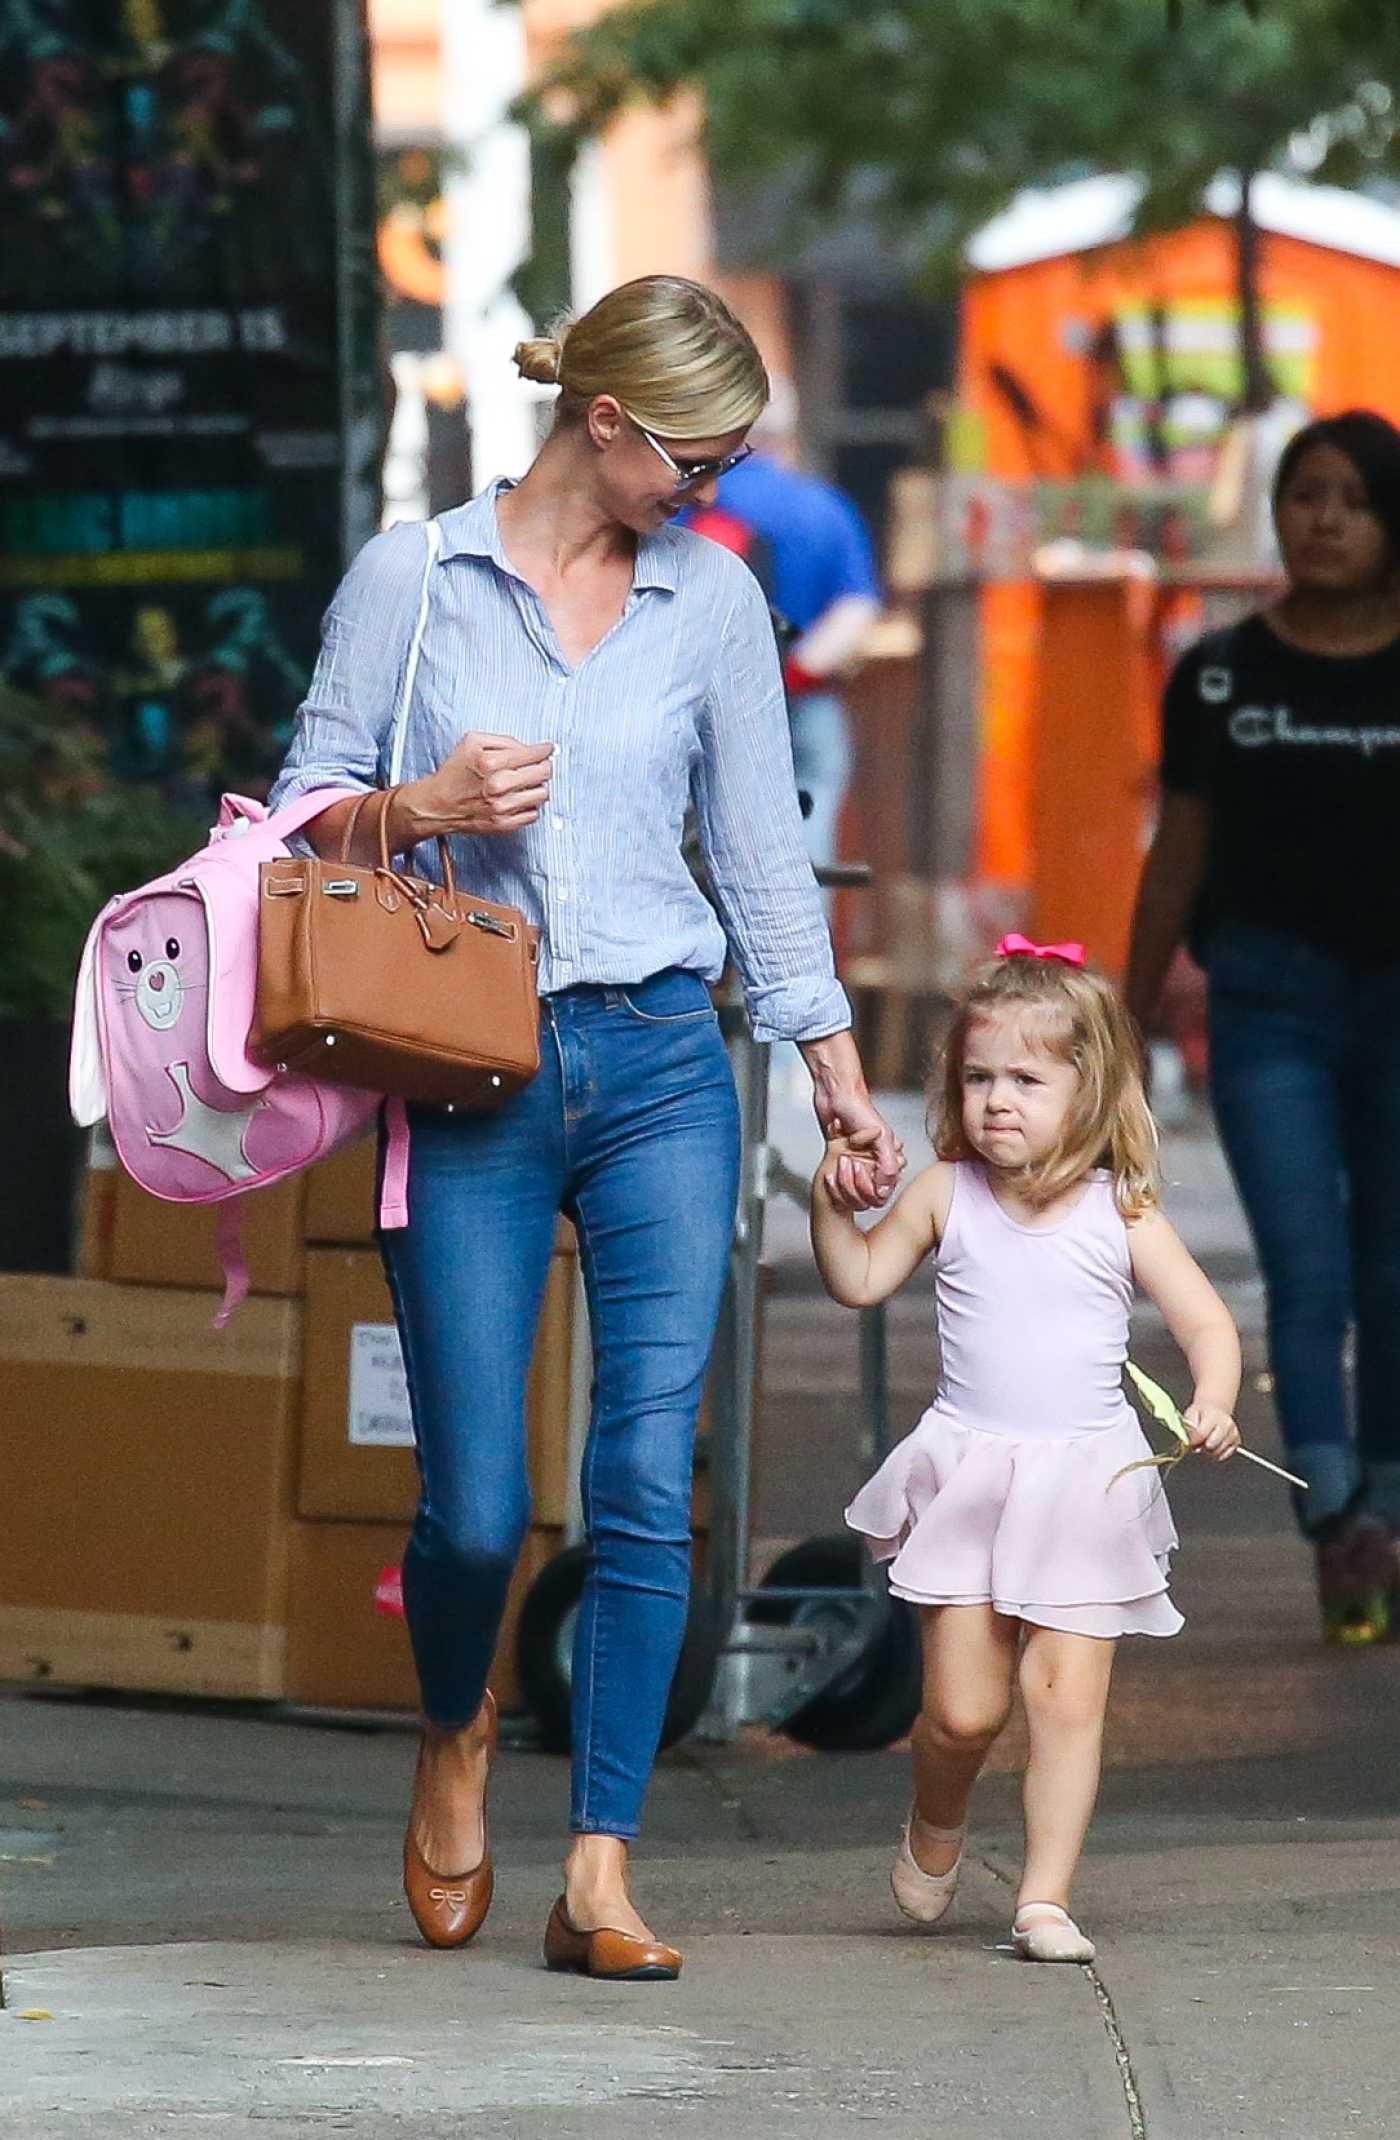 Nicky Hilton in a Blue Jeans Was Seen Out with Her Daughter in New York 09/11/2019